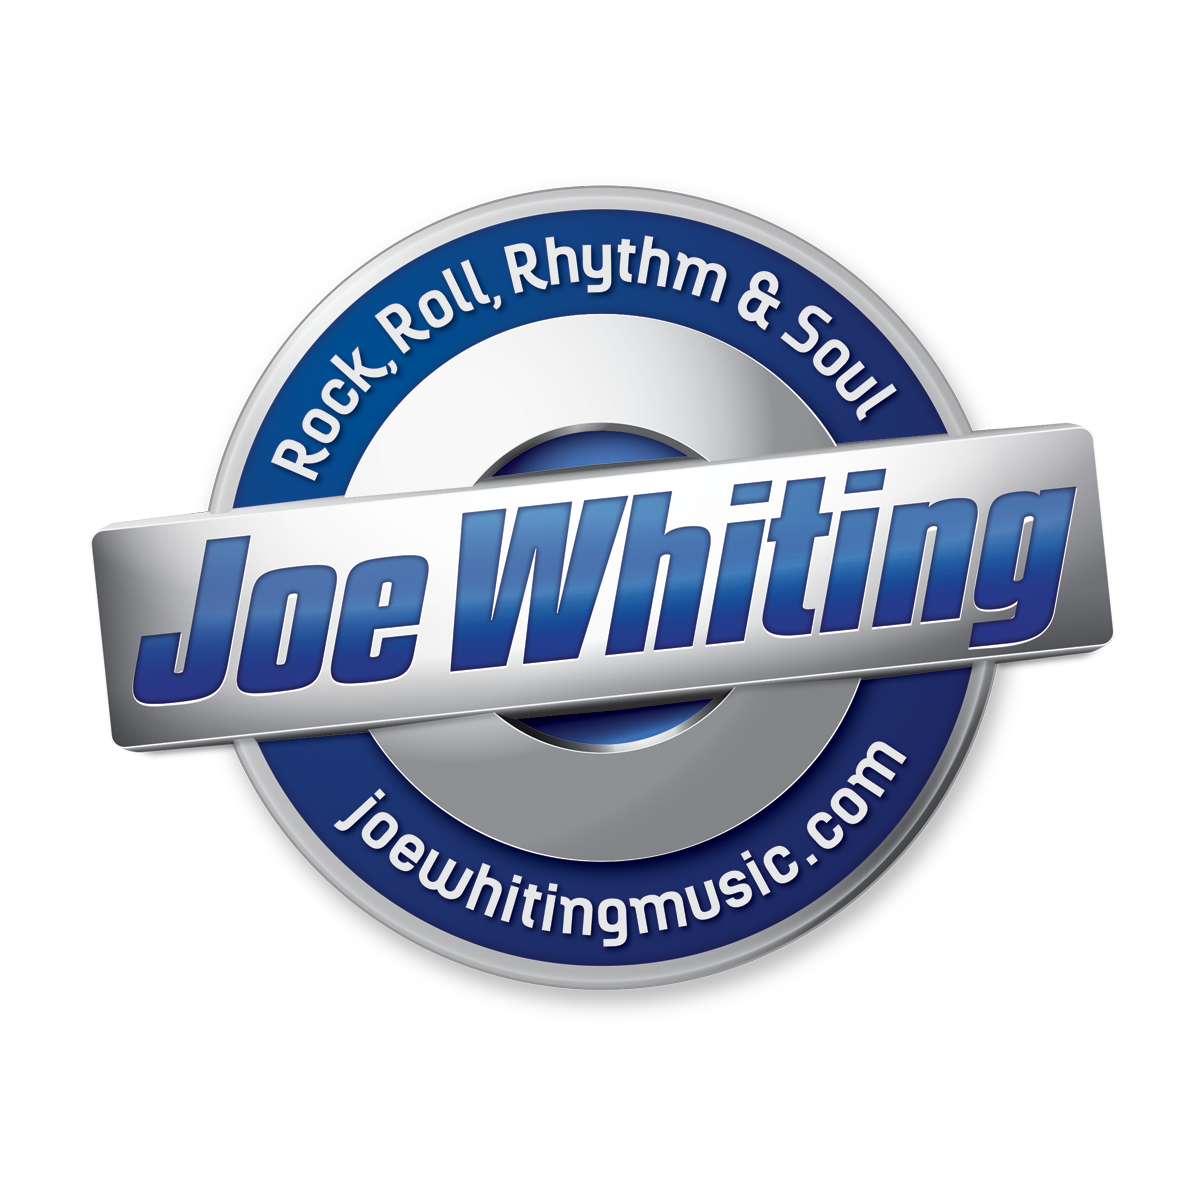 Joe Whiting